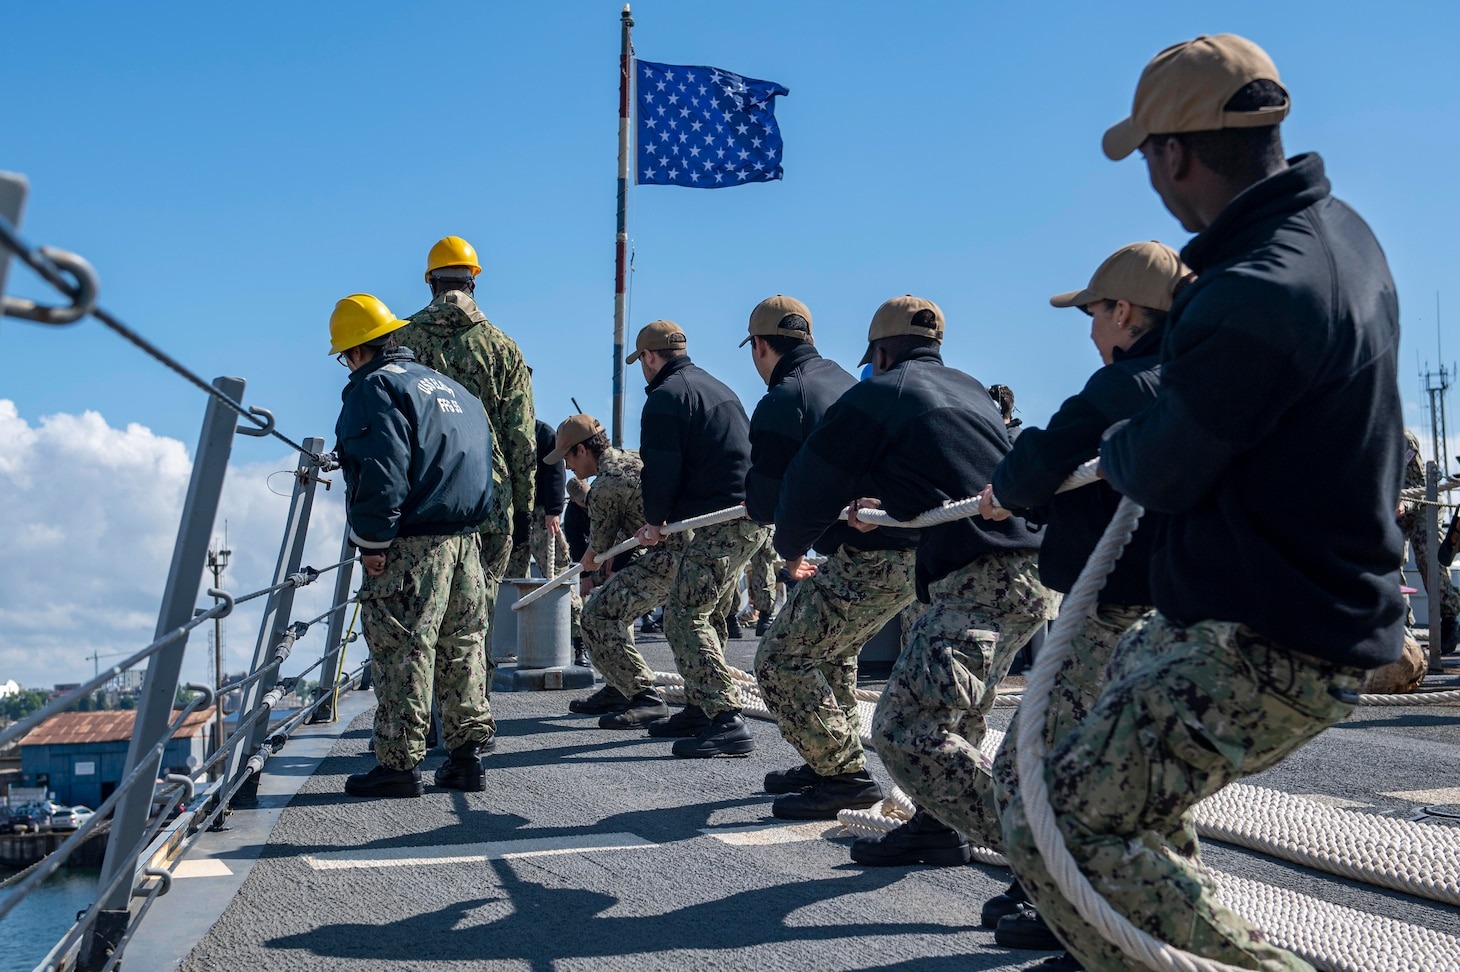 CONSTANTA, Romania (June 18, 2021) Sailors assigned to the Arleigh Burke-class guided-missile destroyer USS Laboon (DDG 58) heave a mooring line as Laboon arrives in Constanta, Romania, June 18, 2021. Laboon is deployed to the U.S. Sixth Fleet area of operations in support of U.S. national security interests in Europe and Africa. (U.S. Navy photo by Mass Communication Specialist Seaman Jeremy R. Boan/Released)